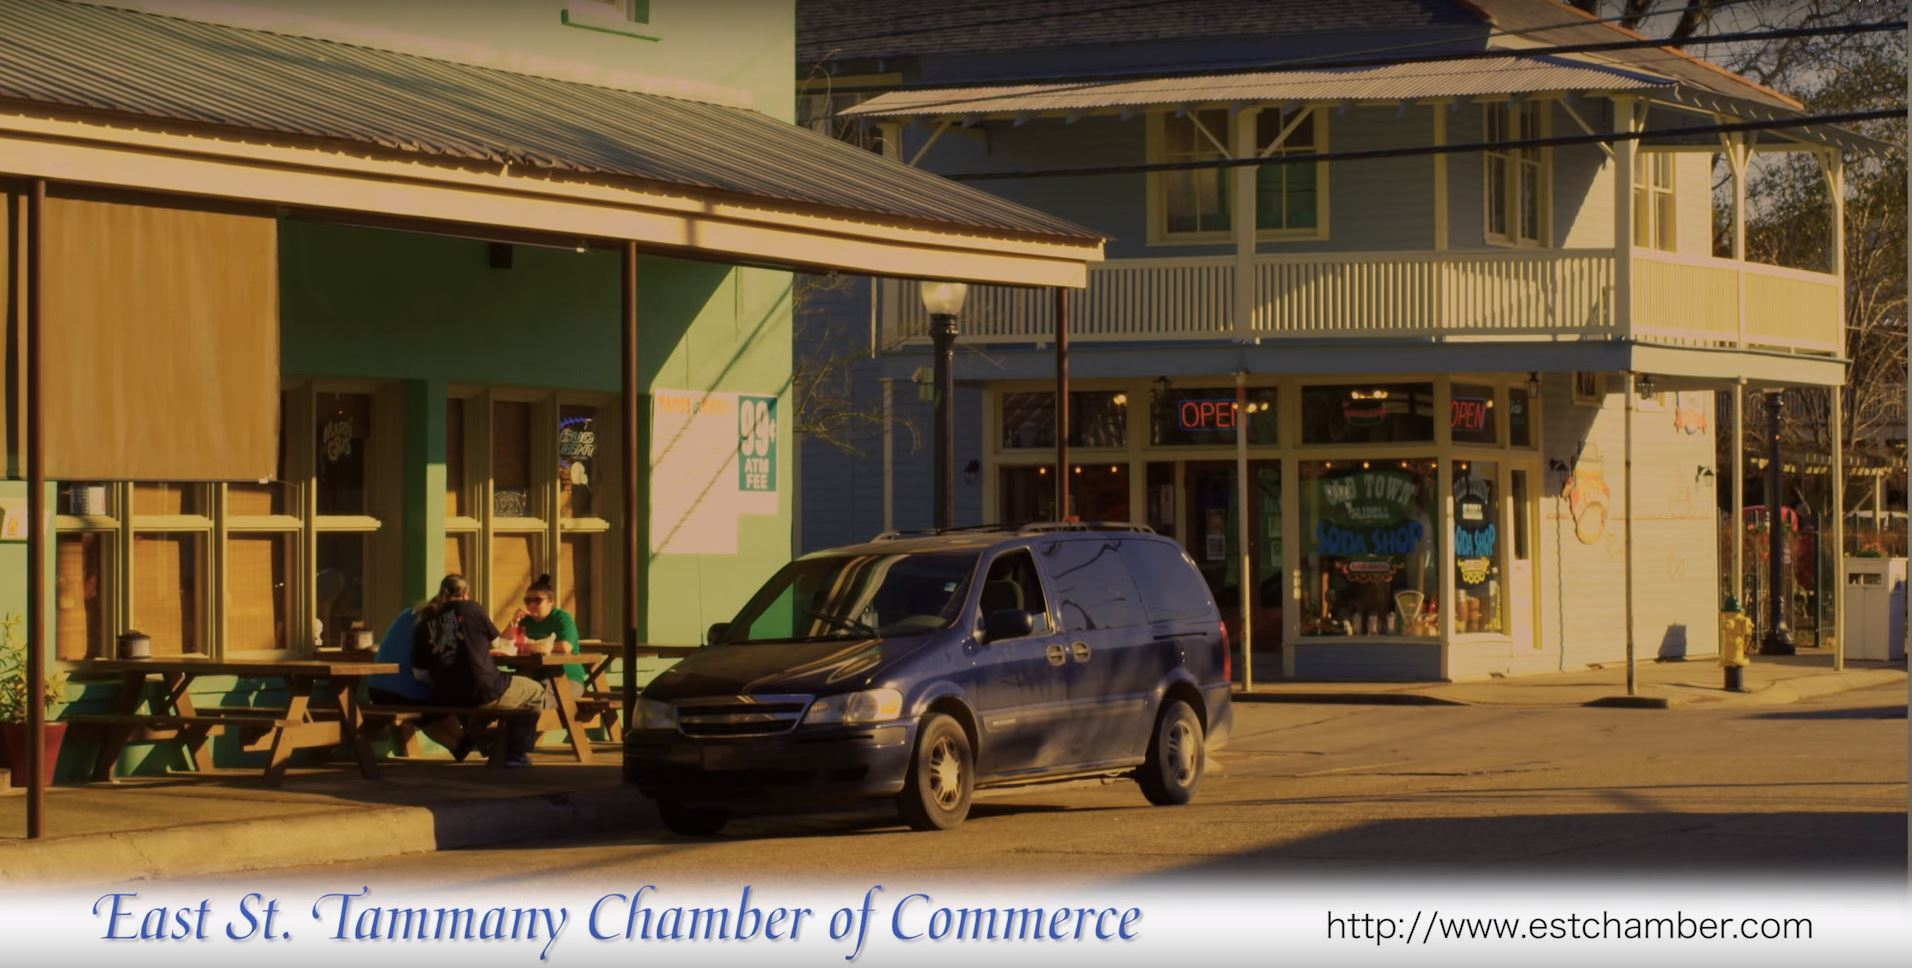 E. St. Tammany Chamber of Commerce